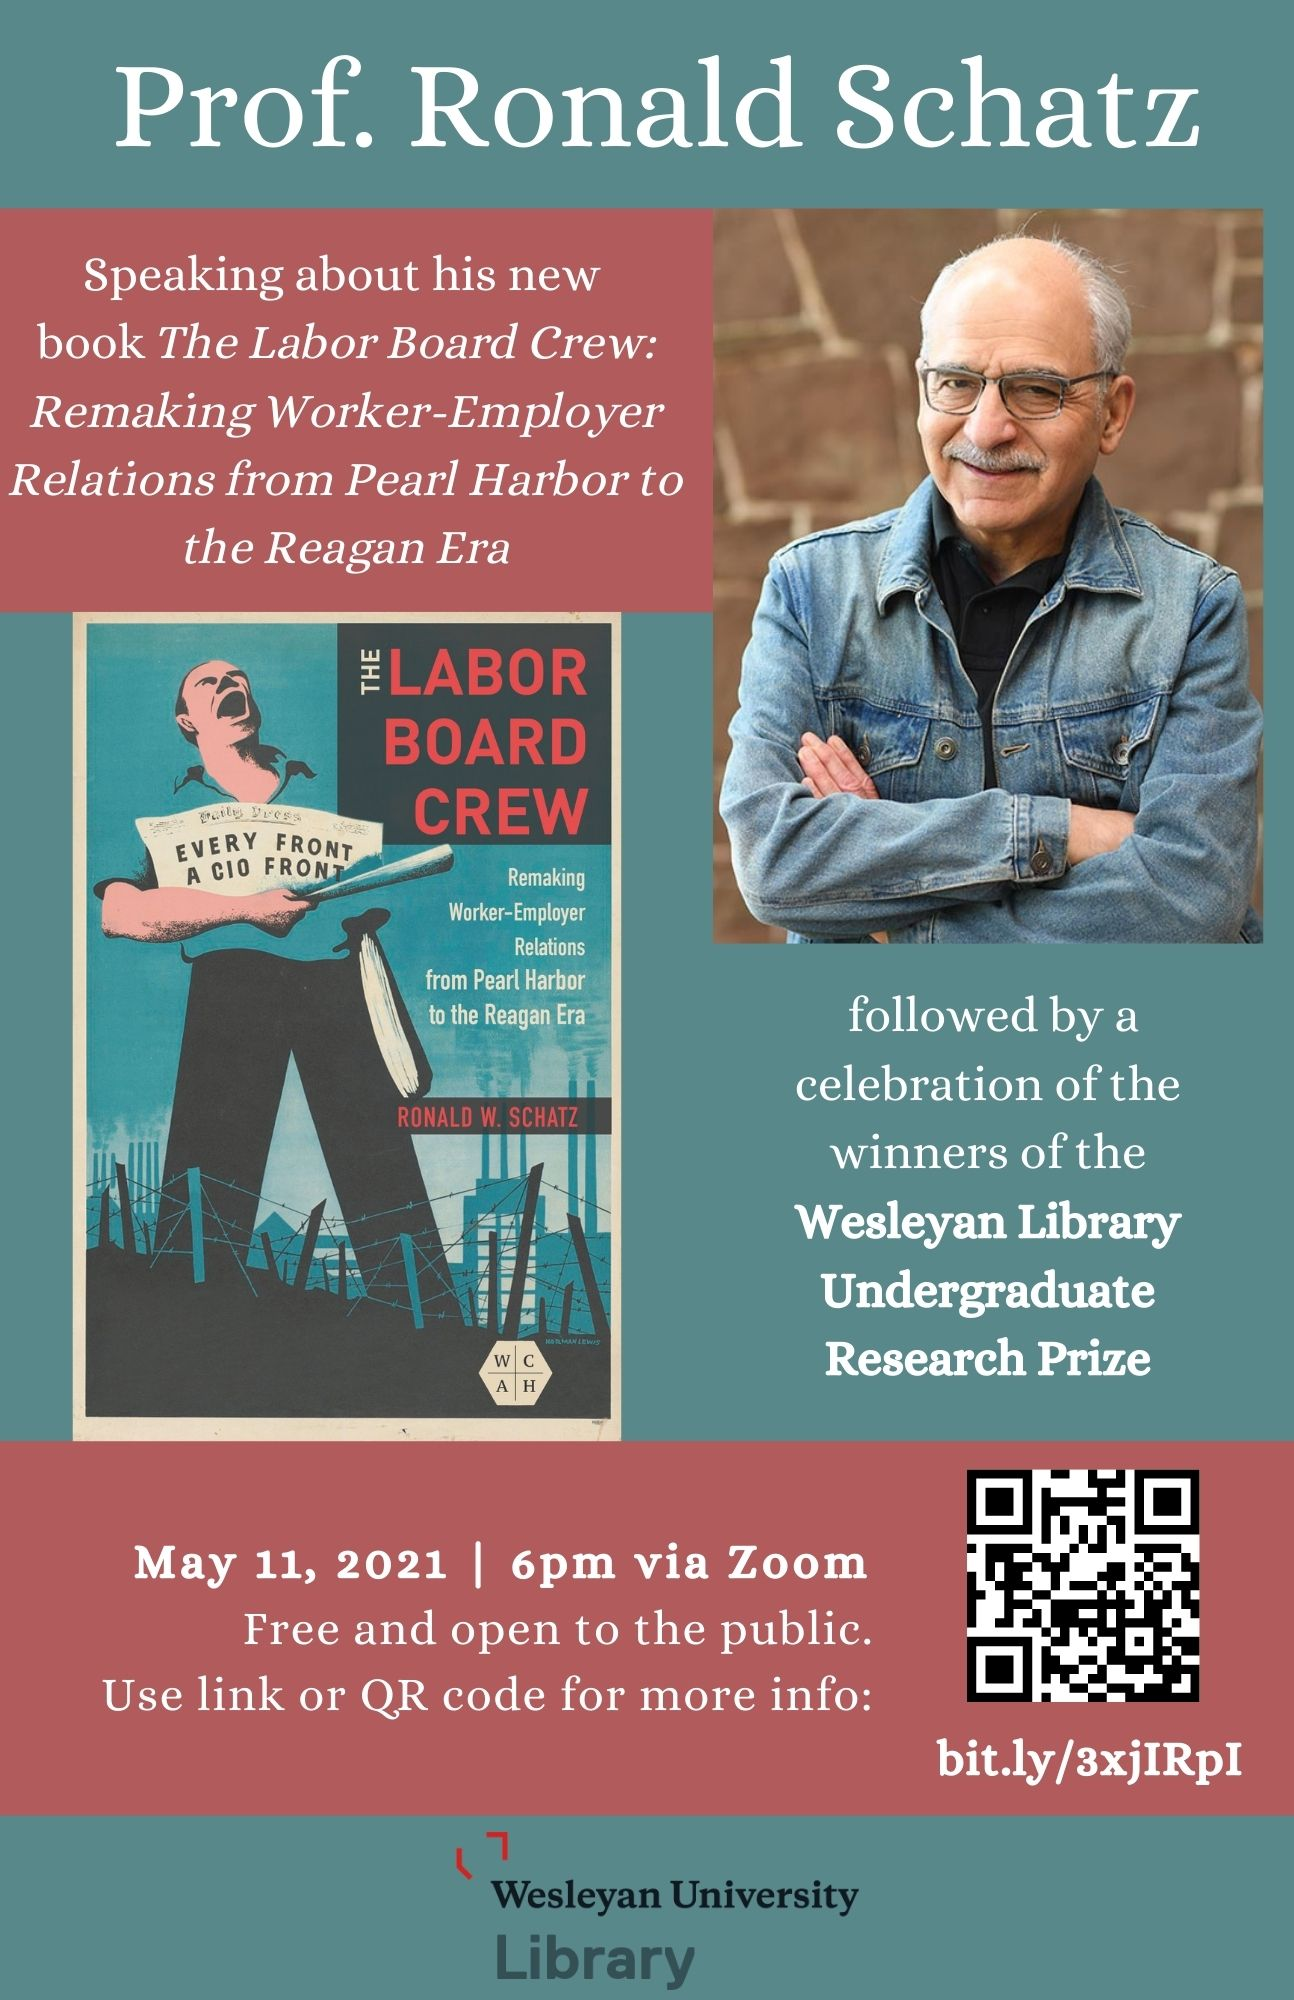 Book talk by Prof. Ronald Schatz and celebration of Wesleyan Library Research Prize Winners